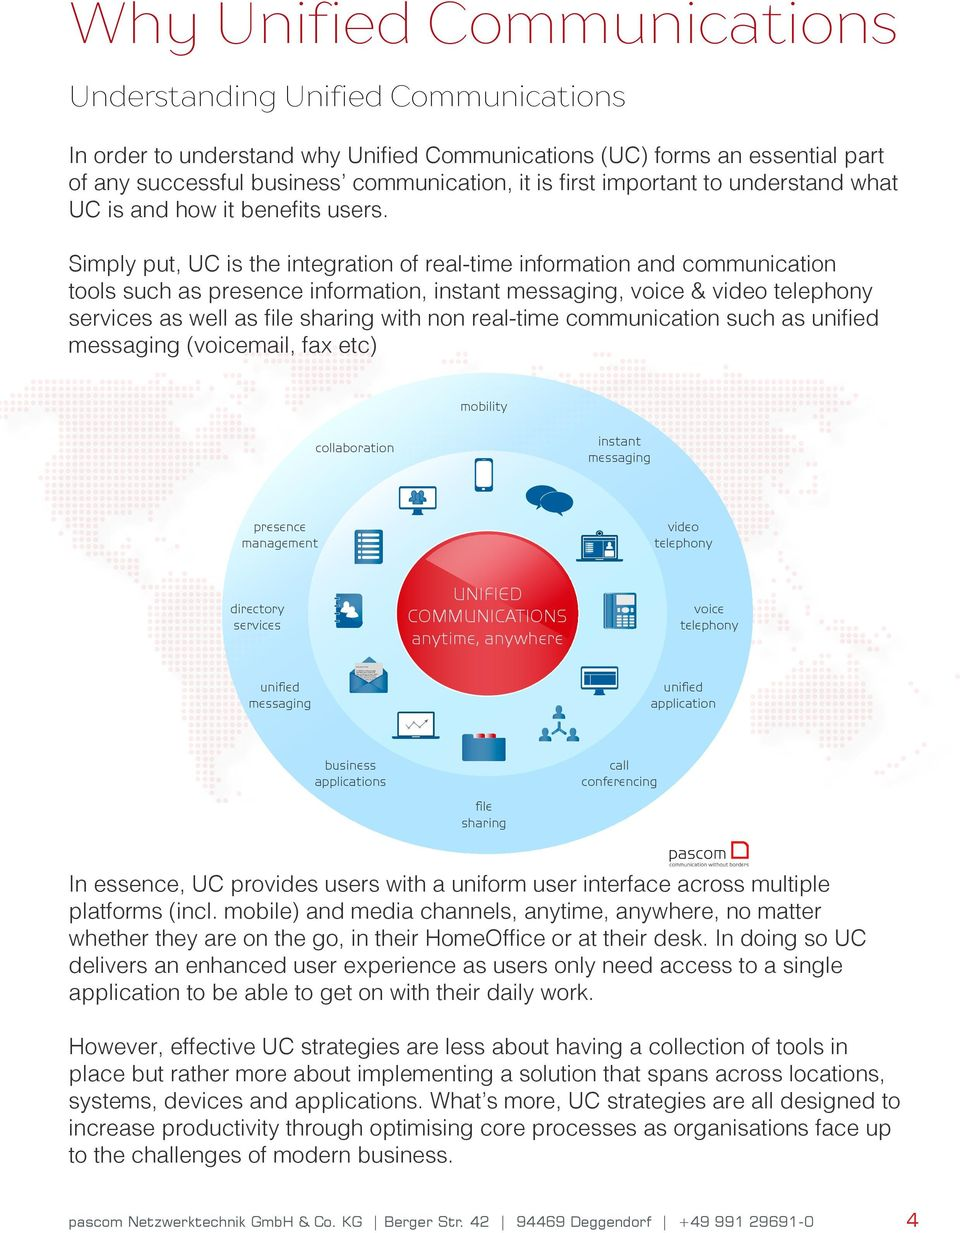 Yours Sincereley, Why Unified Communications Understanding Unified Communications In order to understand why Unified Communications (UC) forms an essential part of any successful business